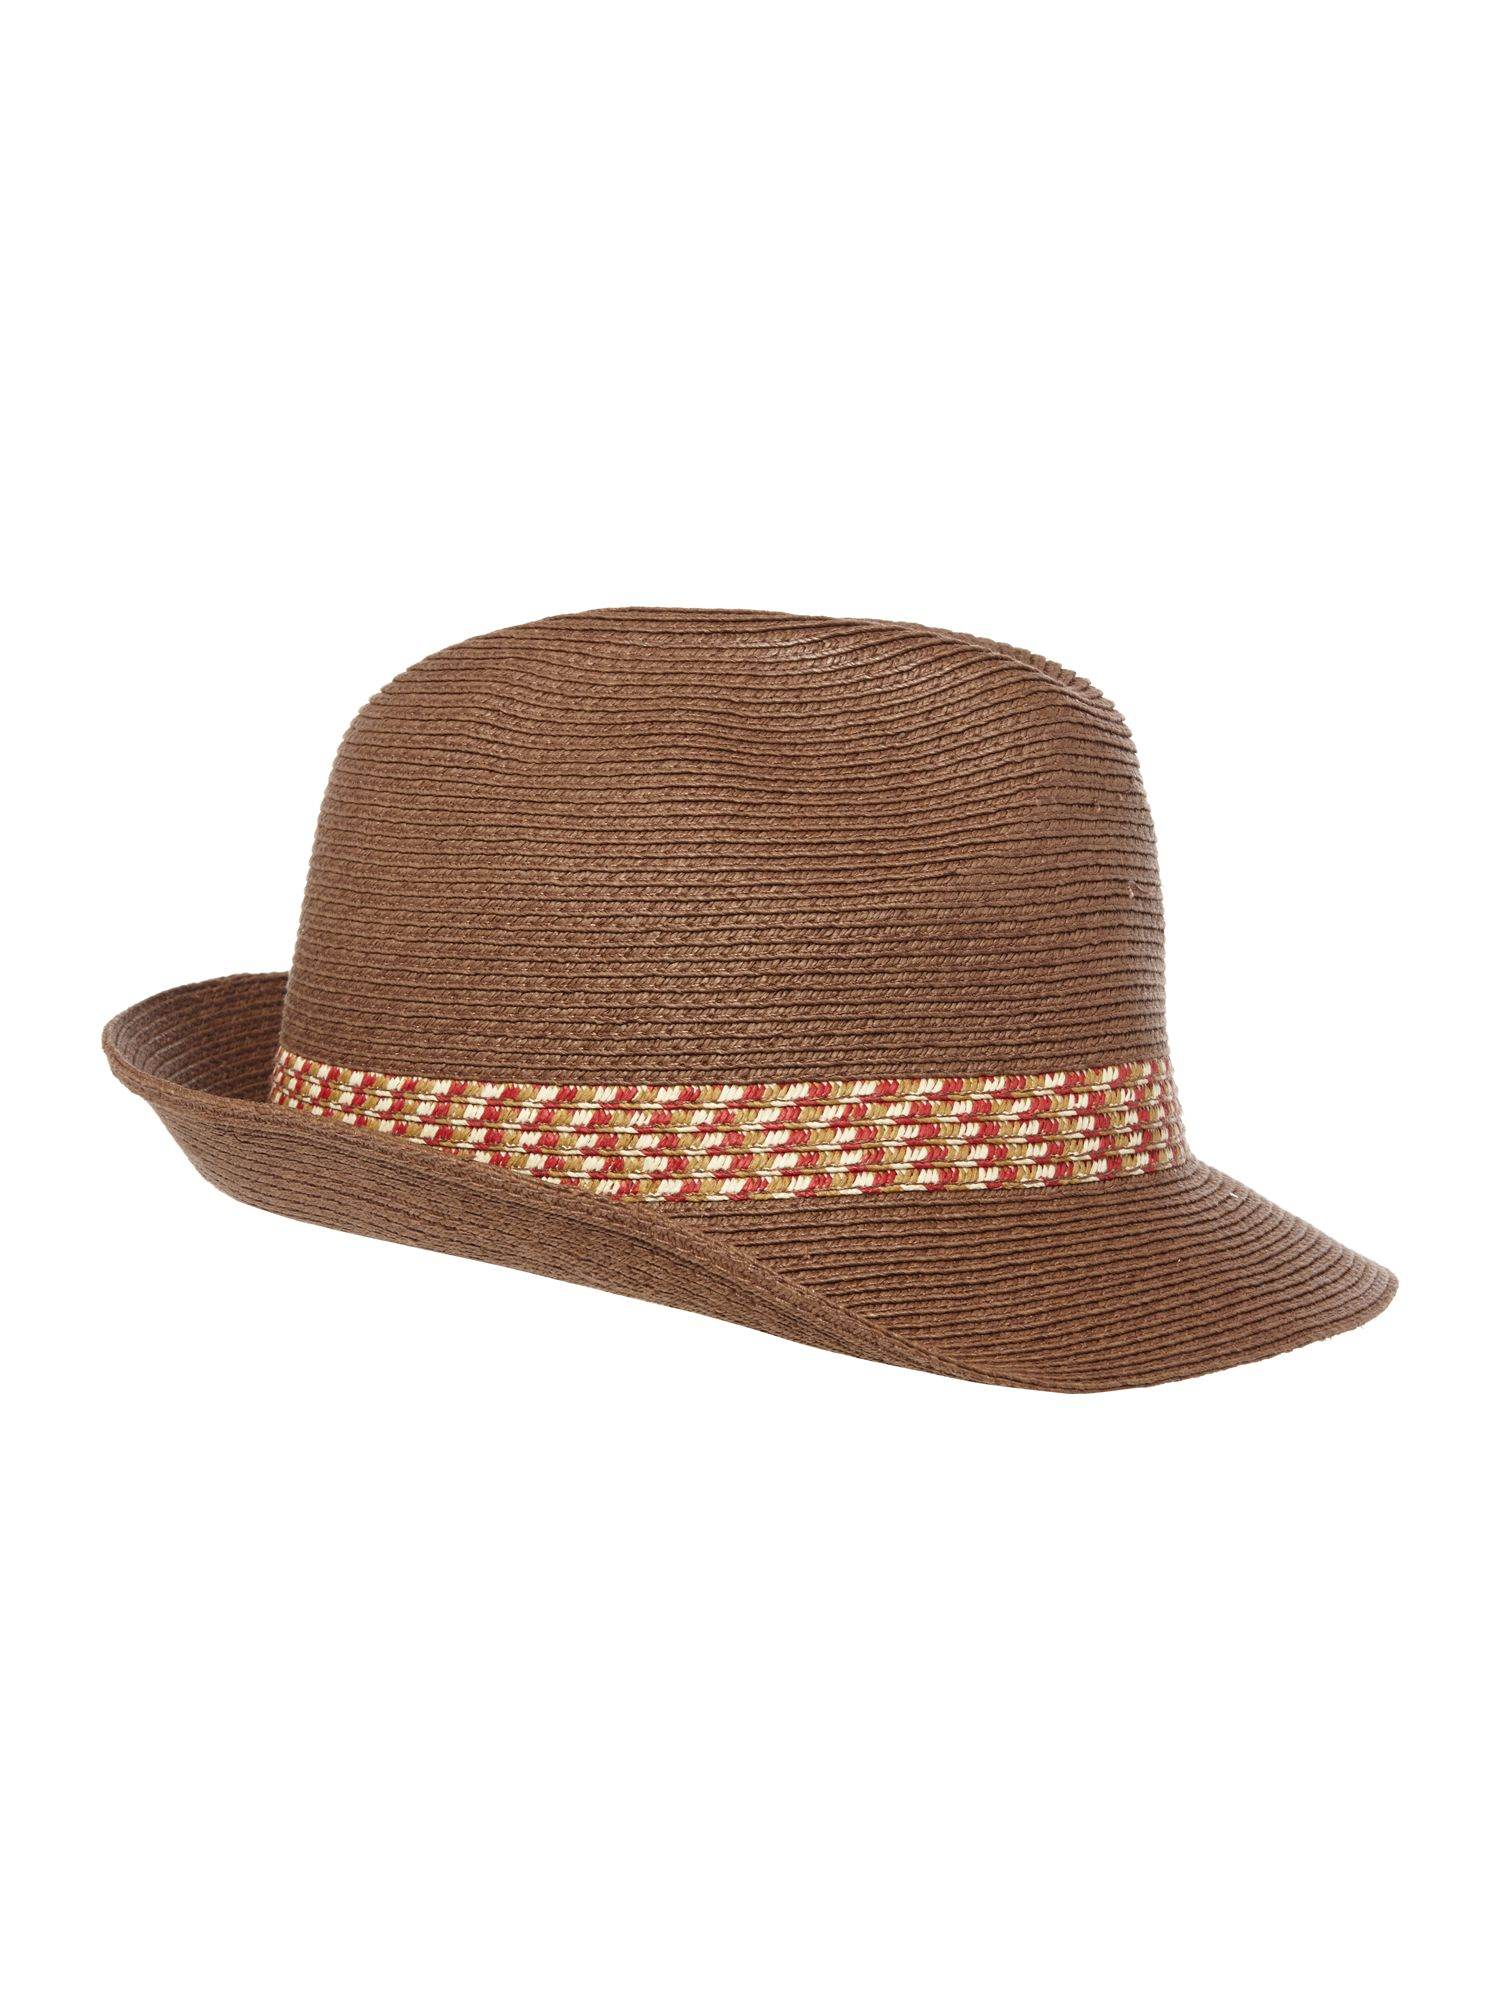 Ted Baker Contrast Band Straw Trilby Hat Natural